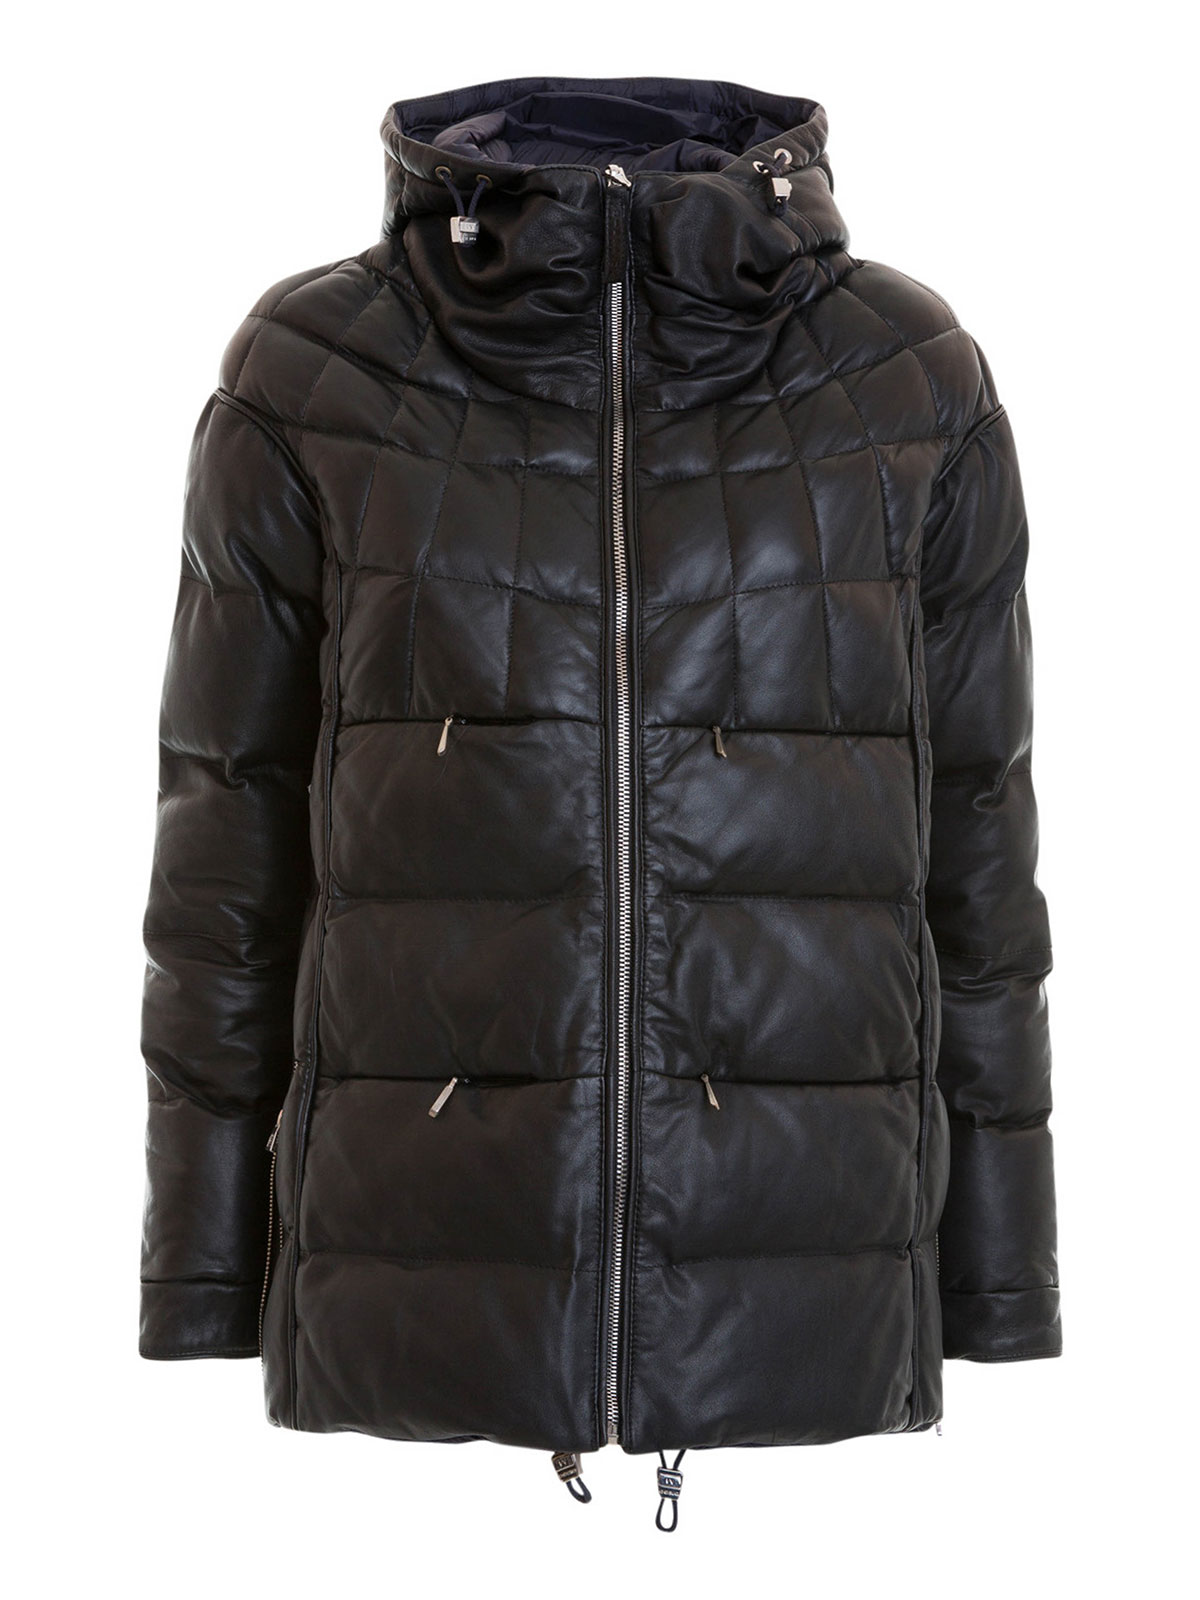 Discover quilted jackets and coats at ASOS. Browse the latest collection of quilted puffer jackets and padded jackets for woman today at ASOS.